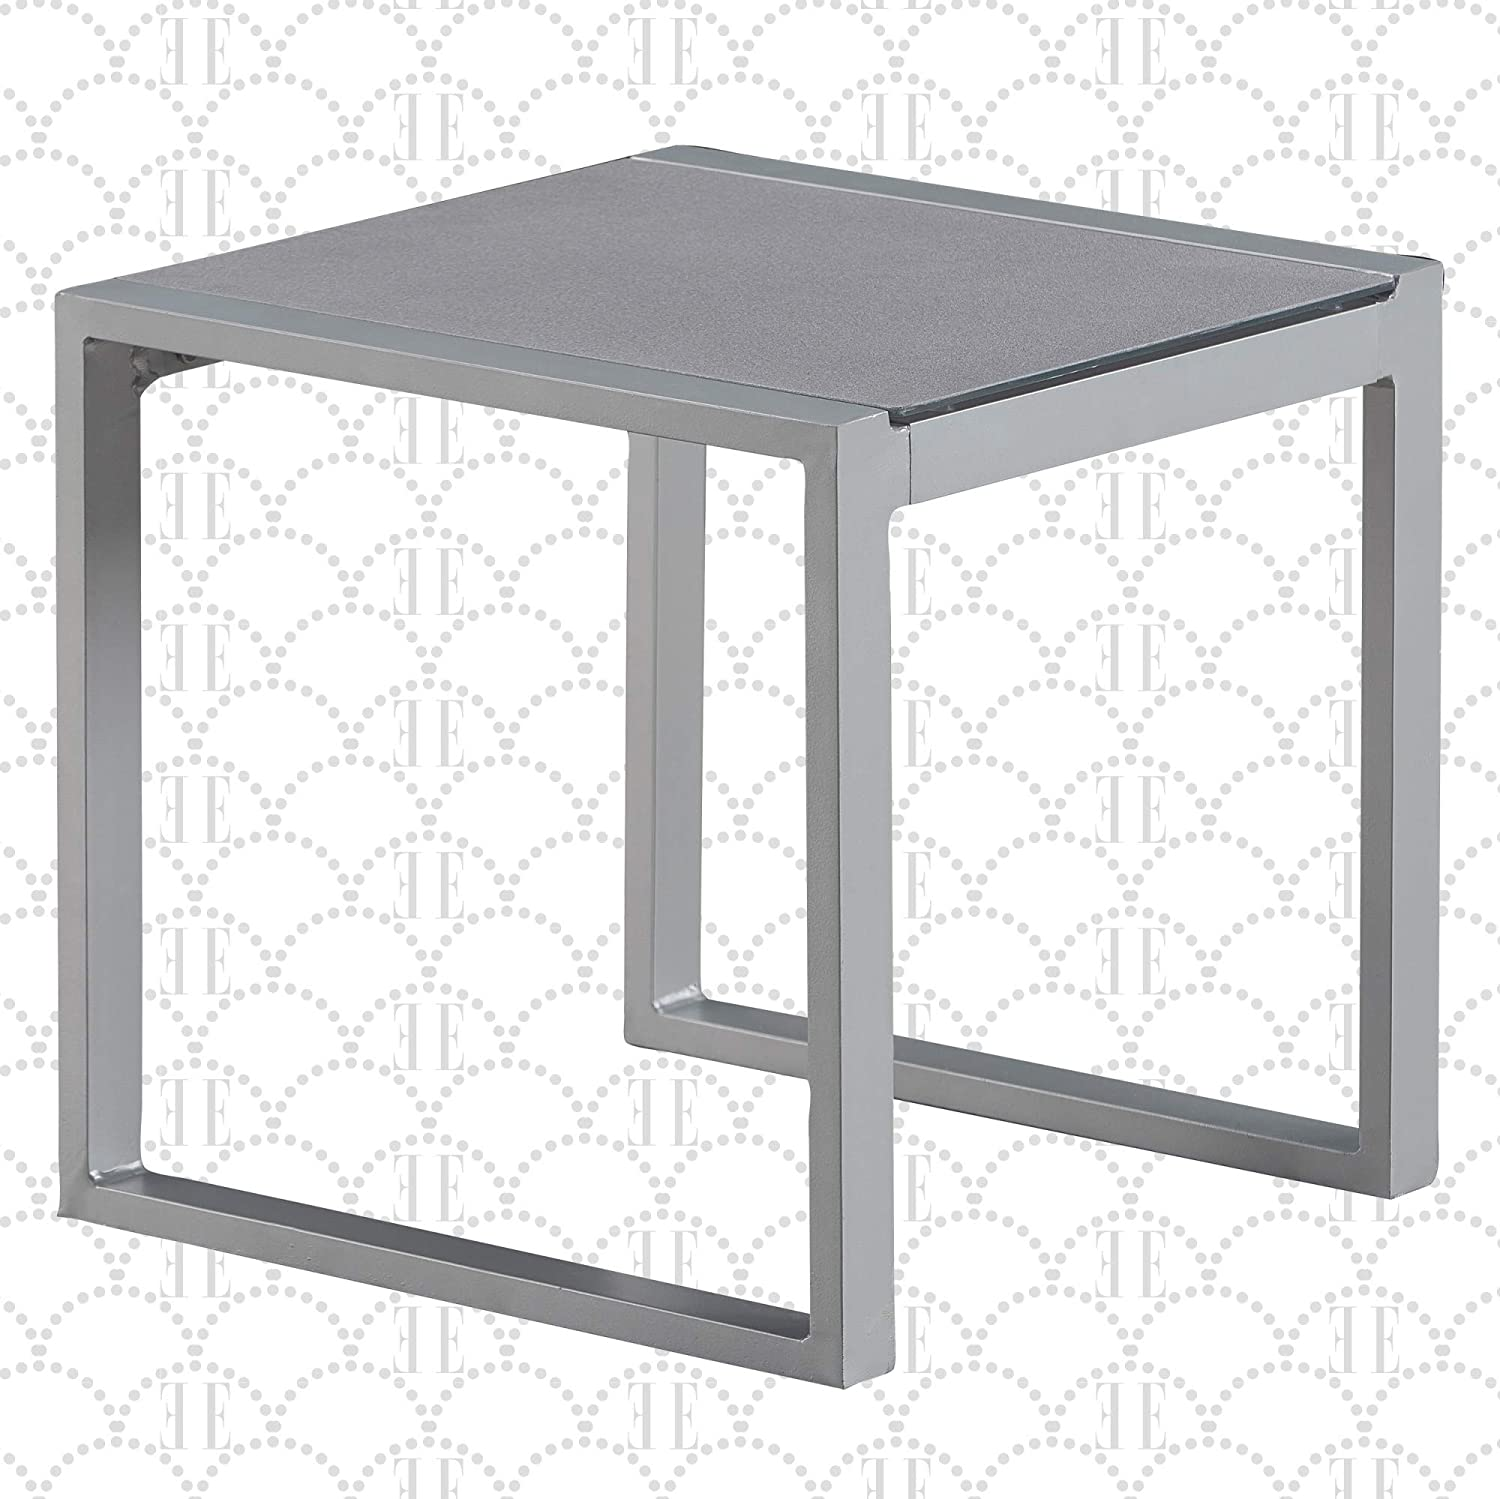 Elle Decor Tropez Mesh Outdoor Patio Furniture Collection with Metal Frame Side Table, Gray